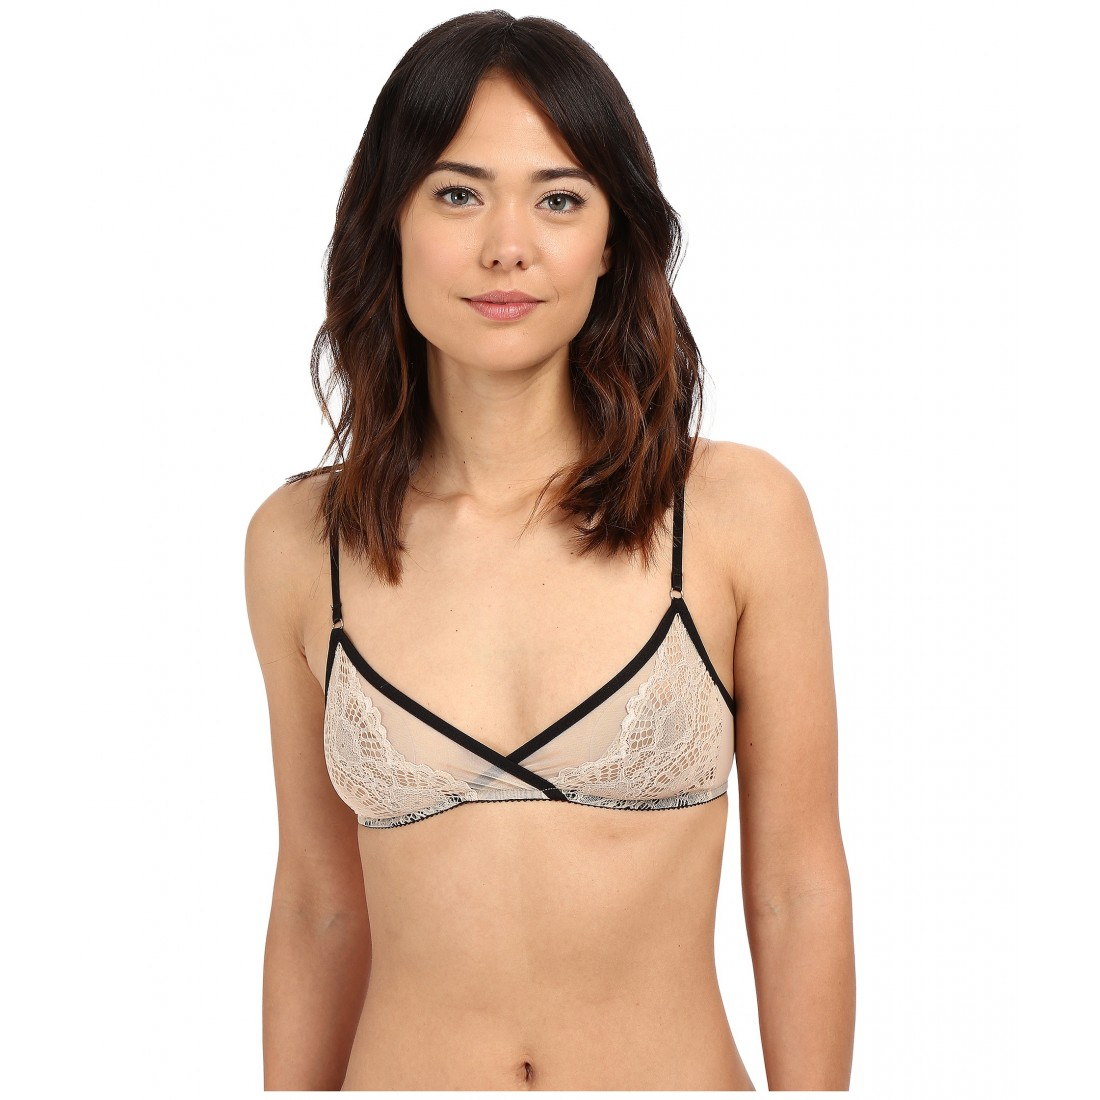 fea5b5b898 Only Hearts Whisper Sweet Nothings Triangle Bralette ZPSKU 8731129  Nude Black